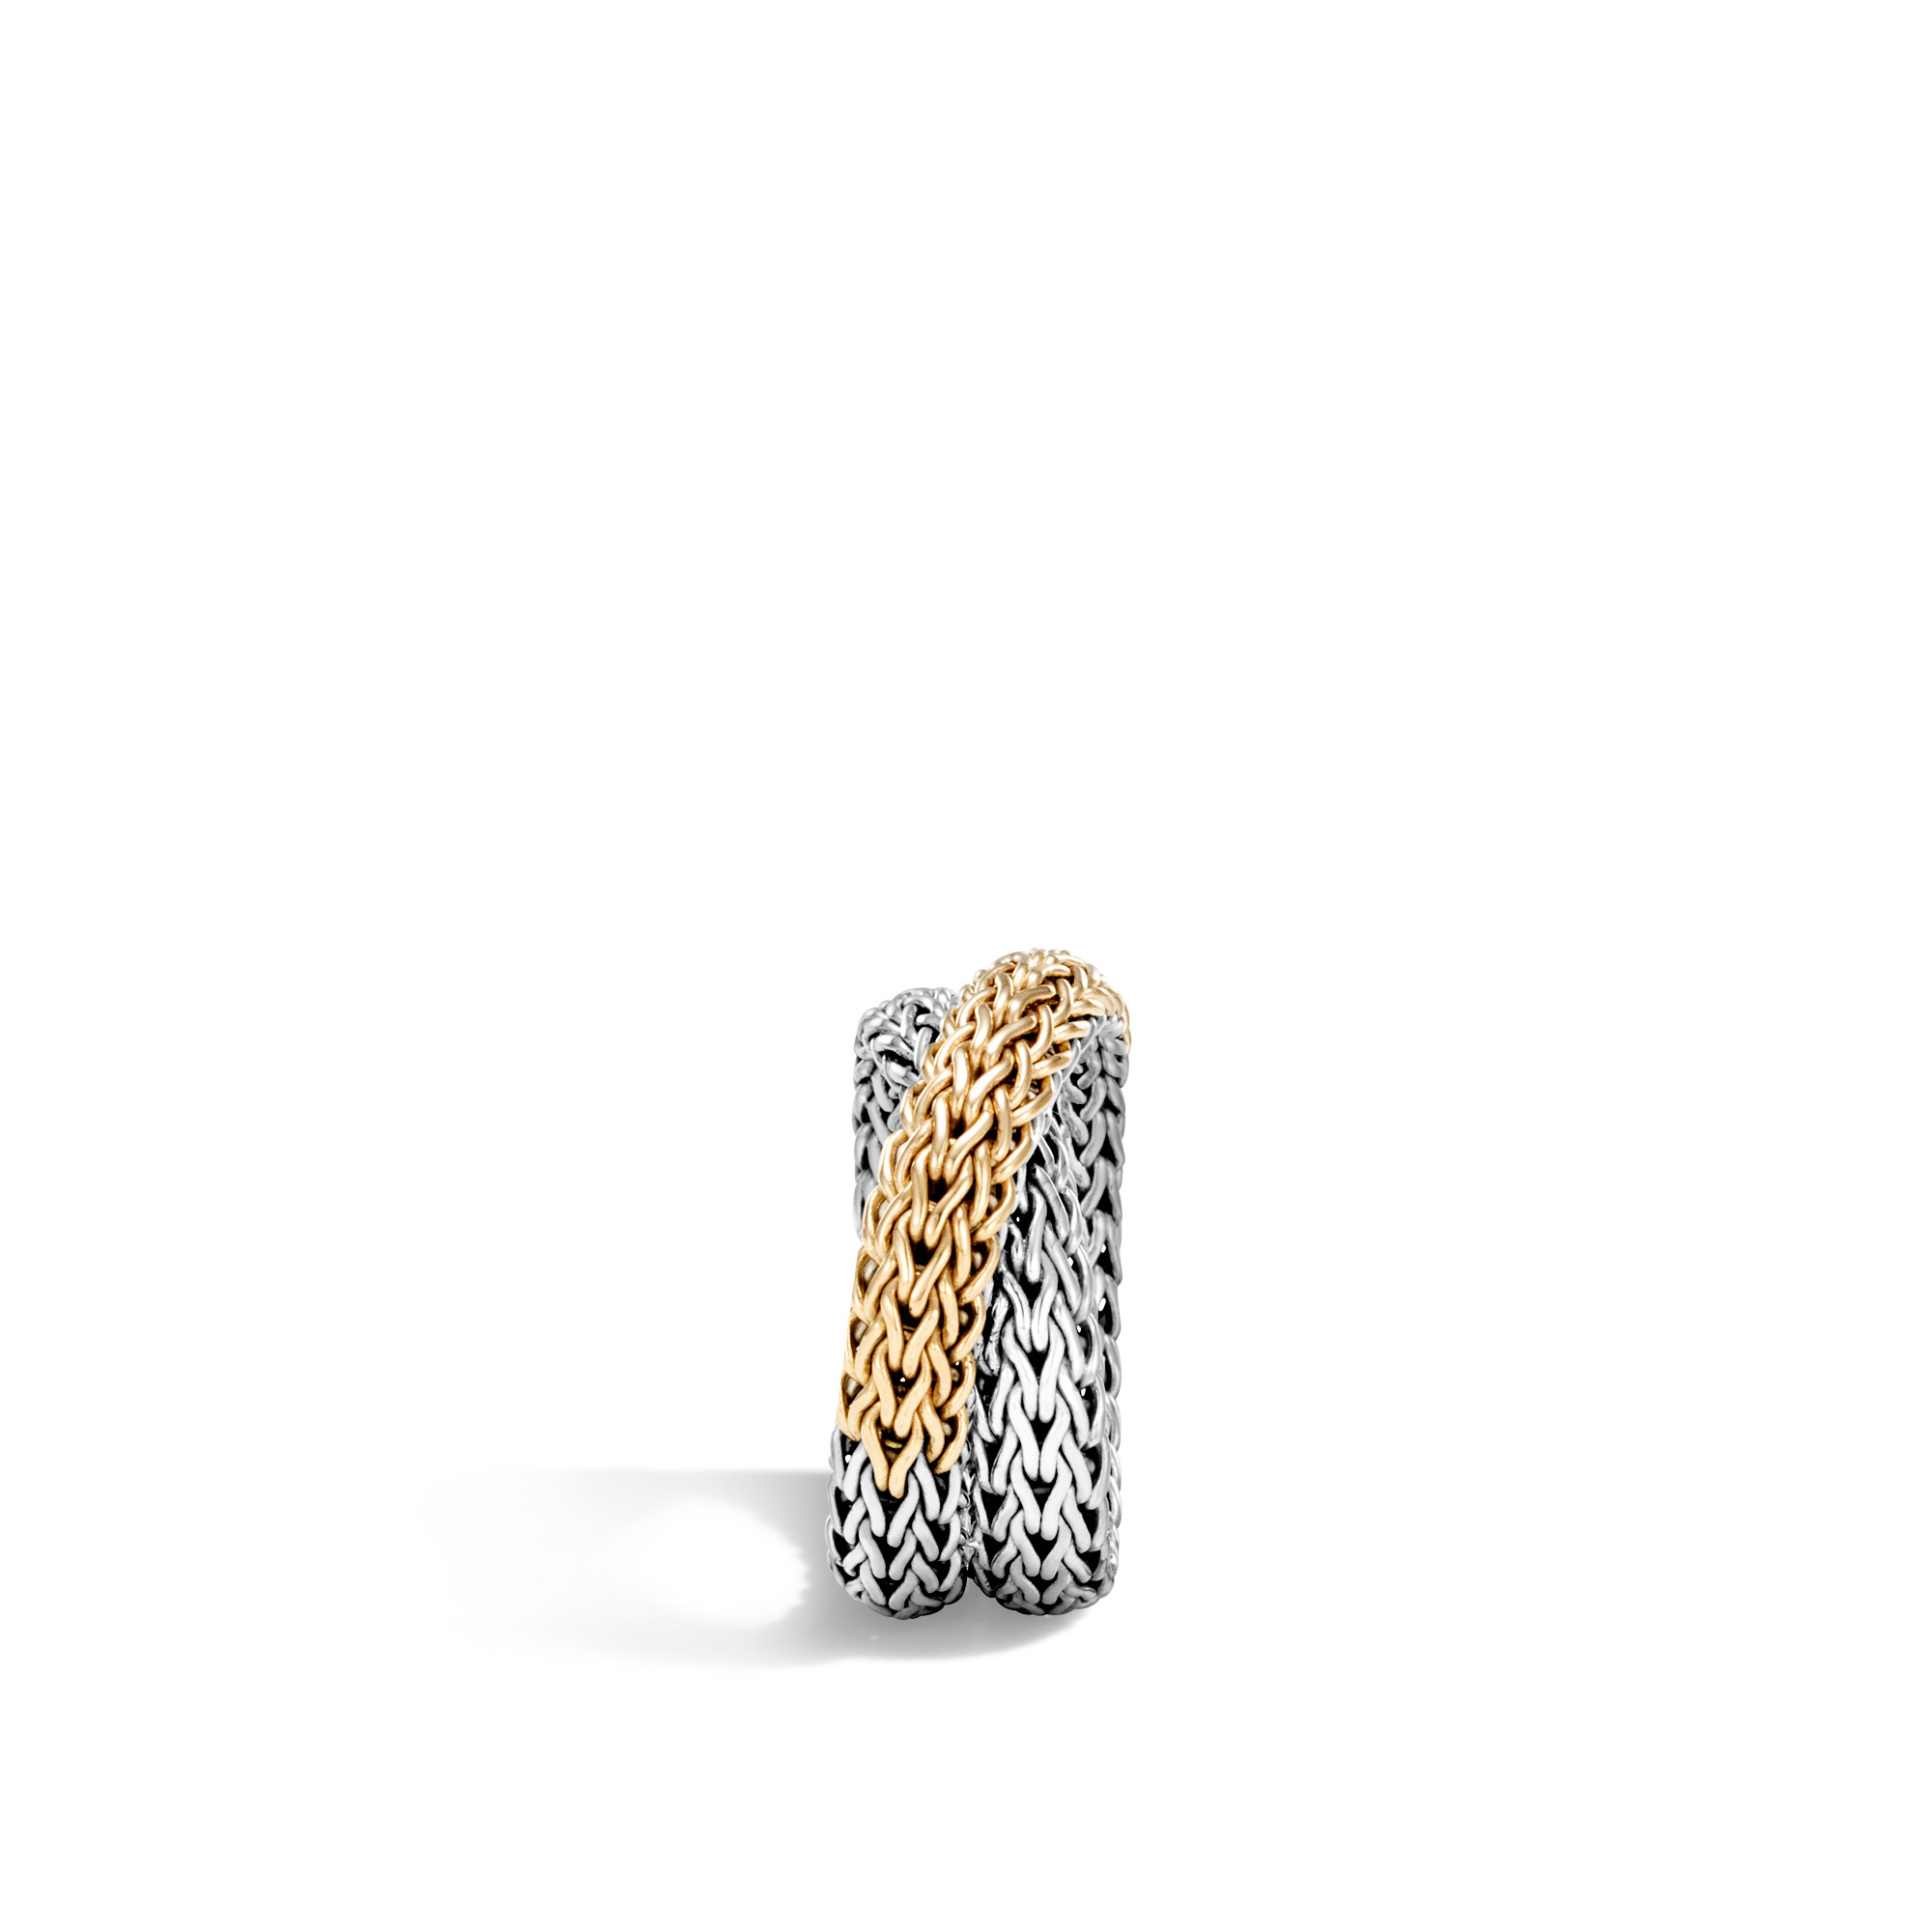 Classic Chain Overlap Ring in Silver and 18K Gold, , large